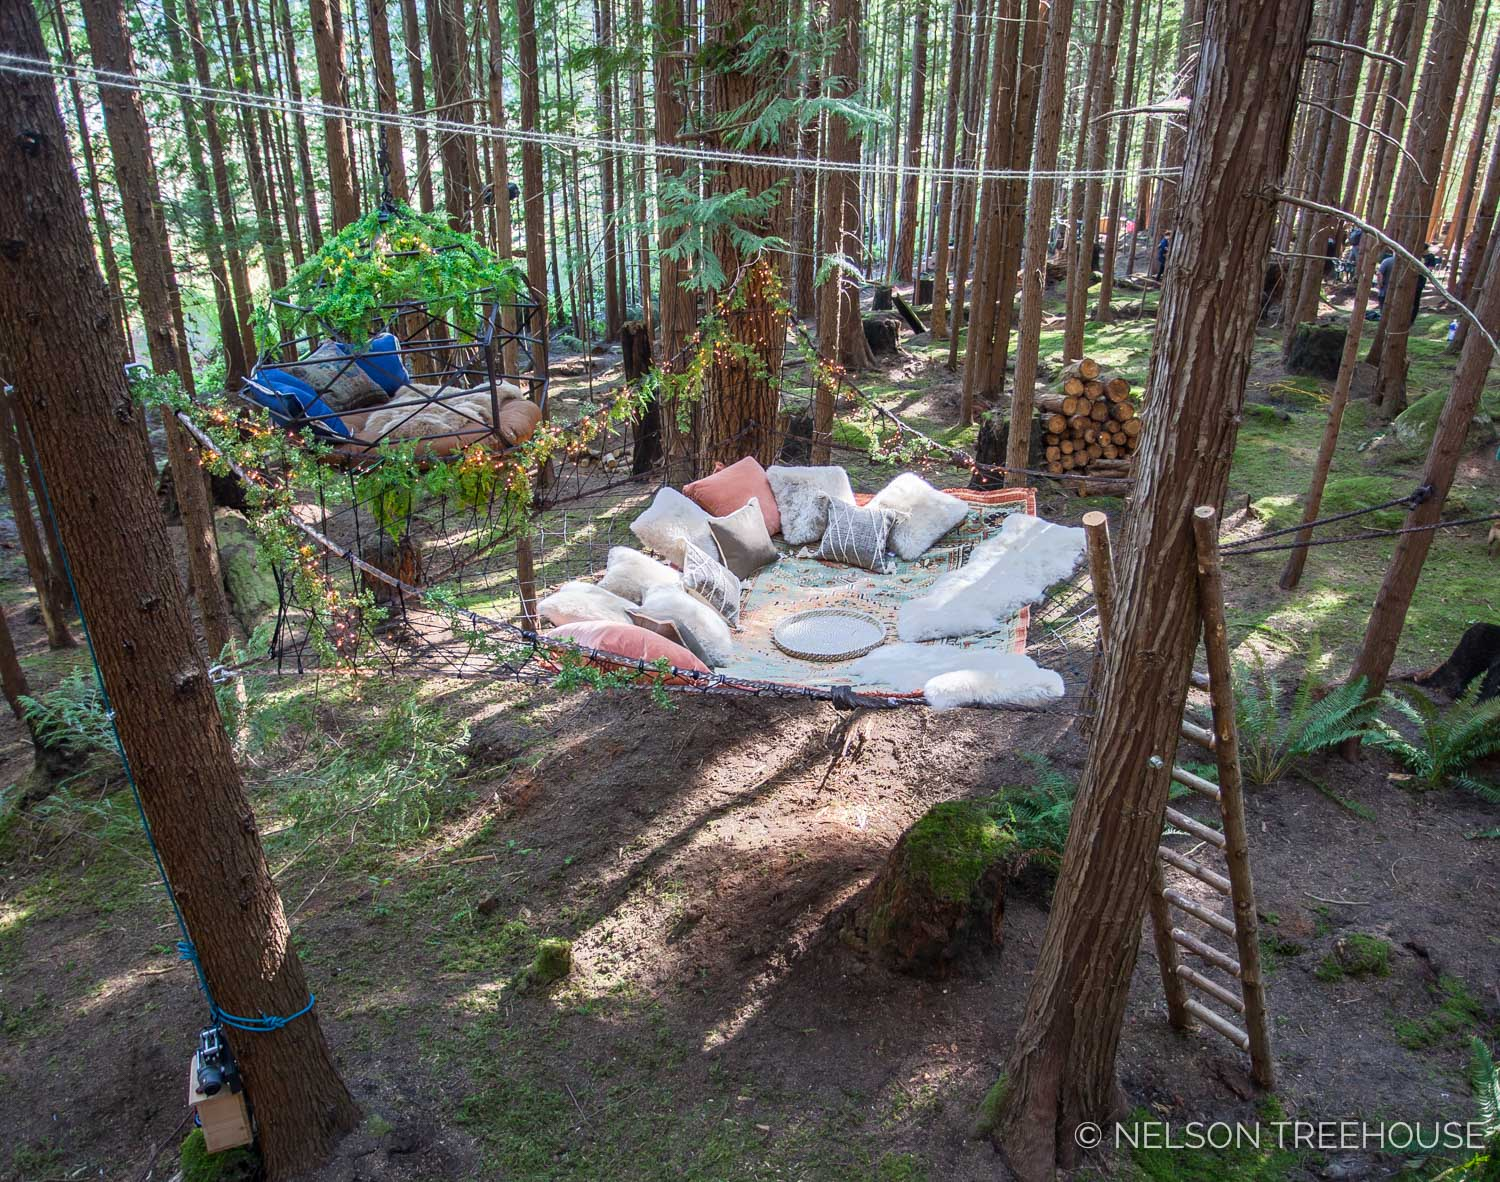 Treetop-Movie-Theater-2018-Nelson-Treehouse-589.jpg